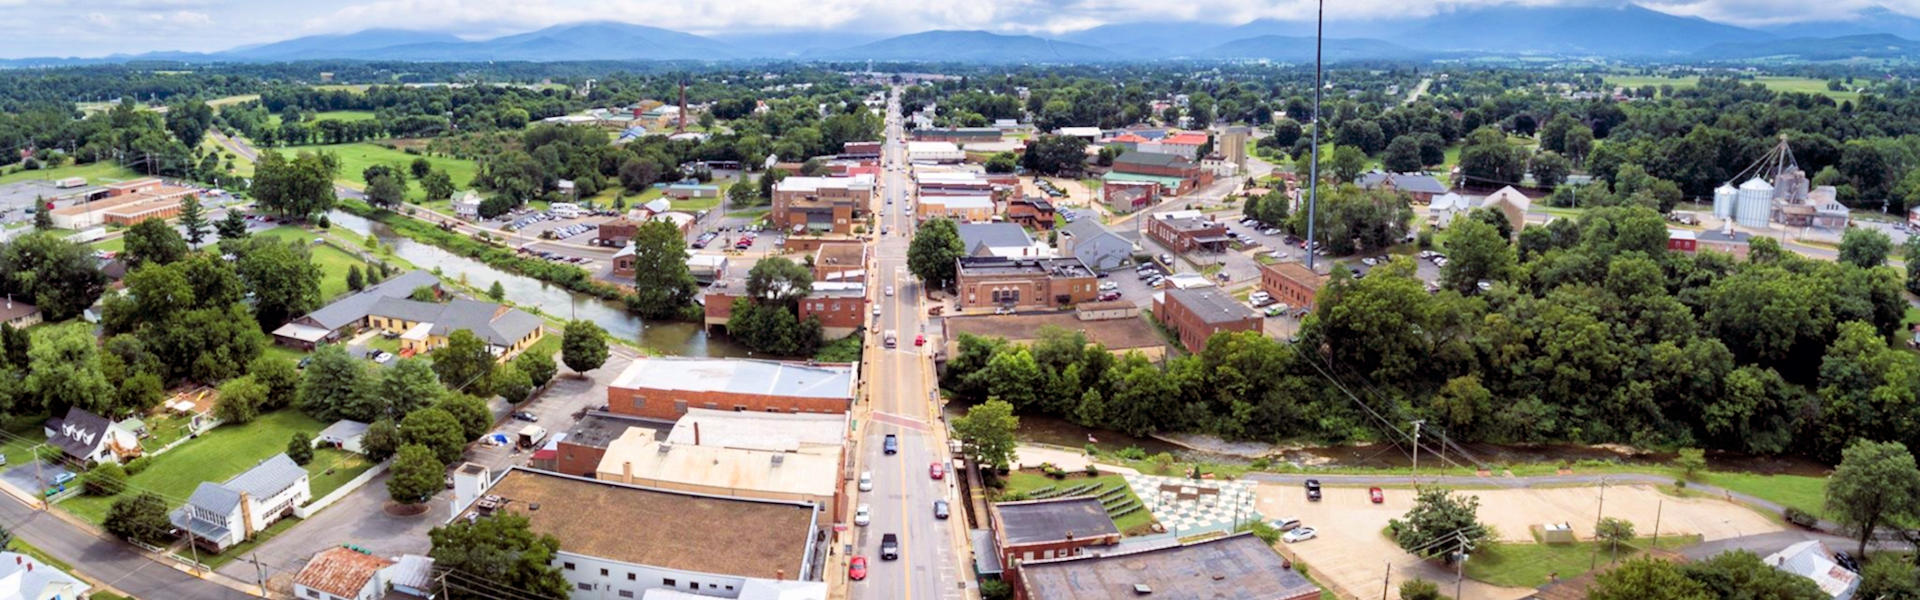 Dusk in downtown Luray VA | Luray Downtown Initiative